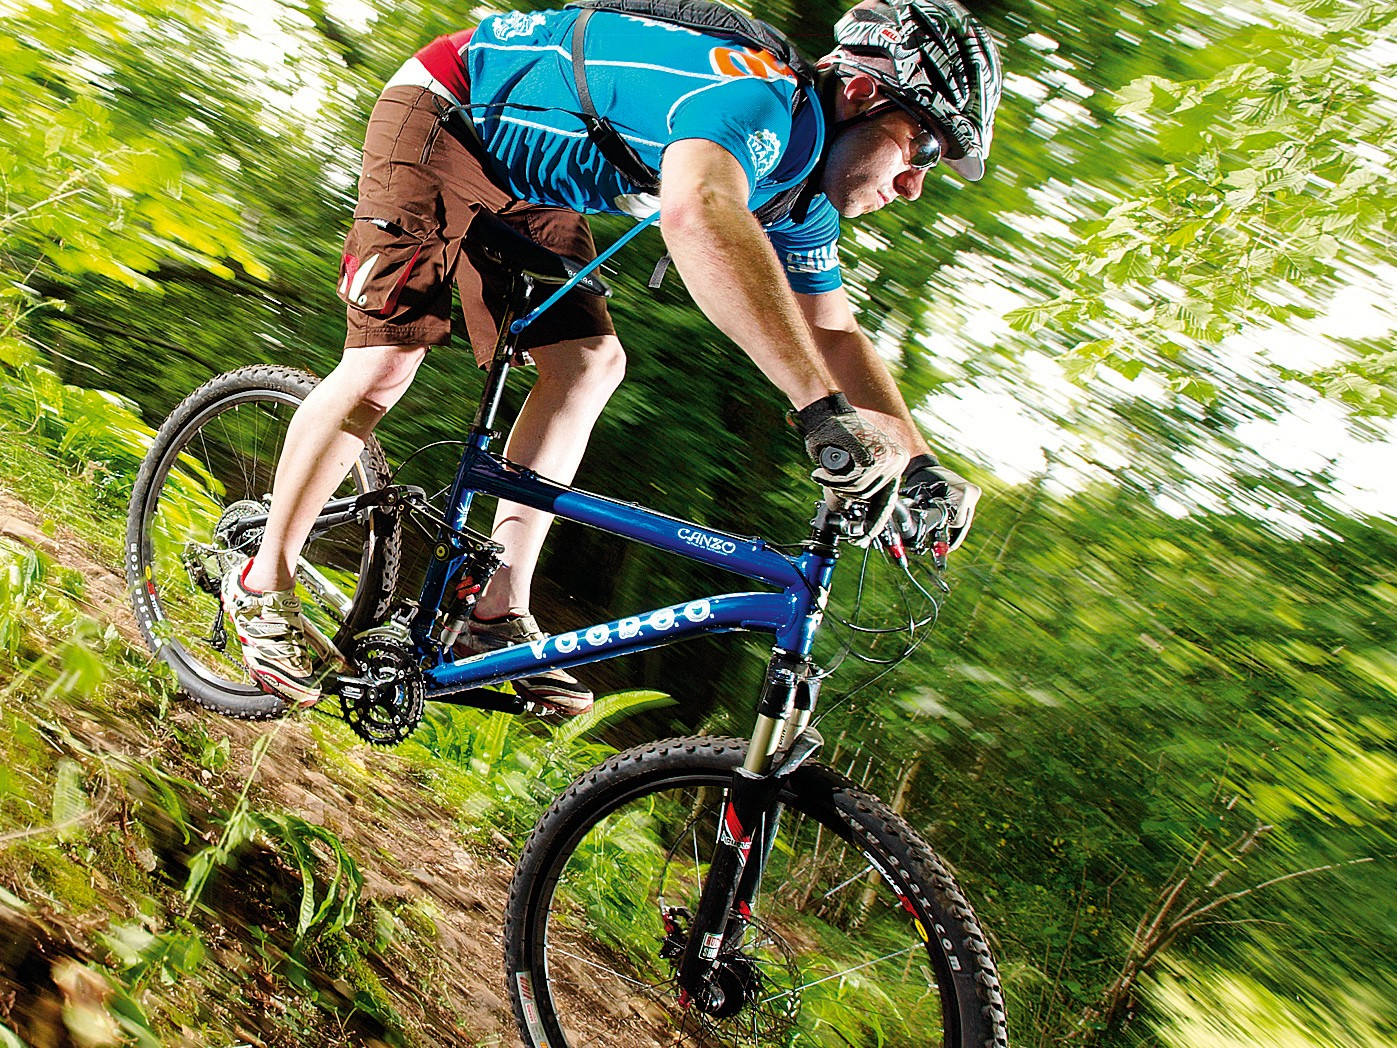 The canzo is a properly sorted  trail bike ready to be ridden as hard as you dare